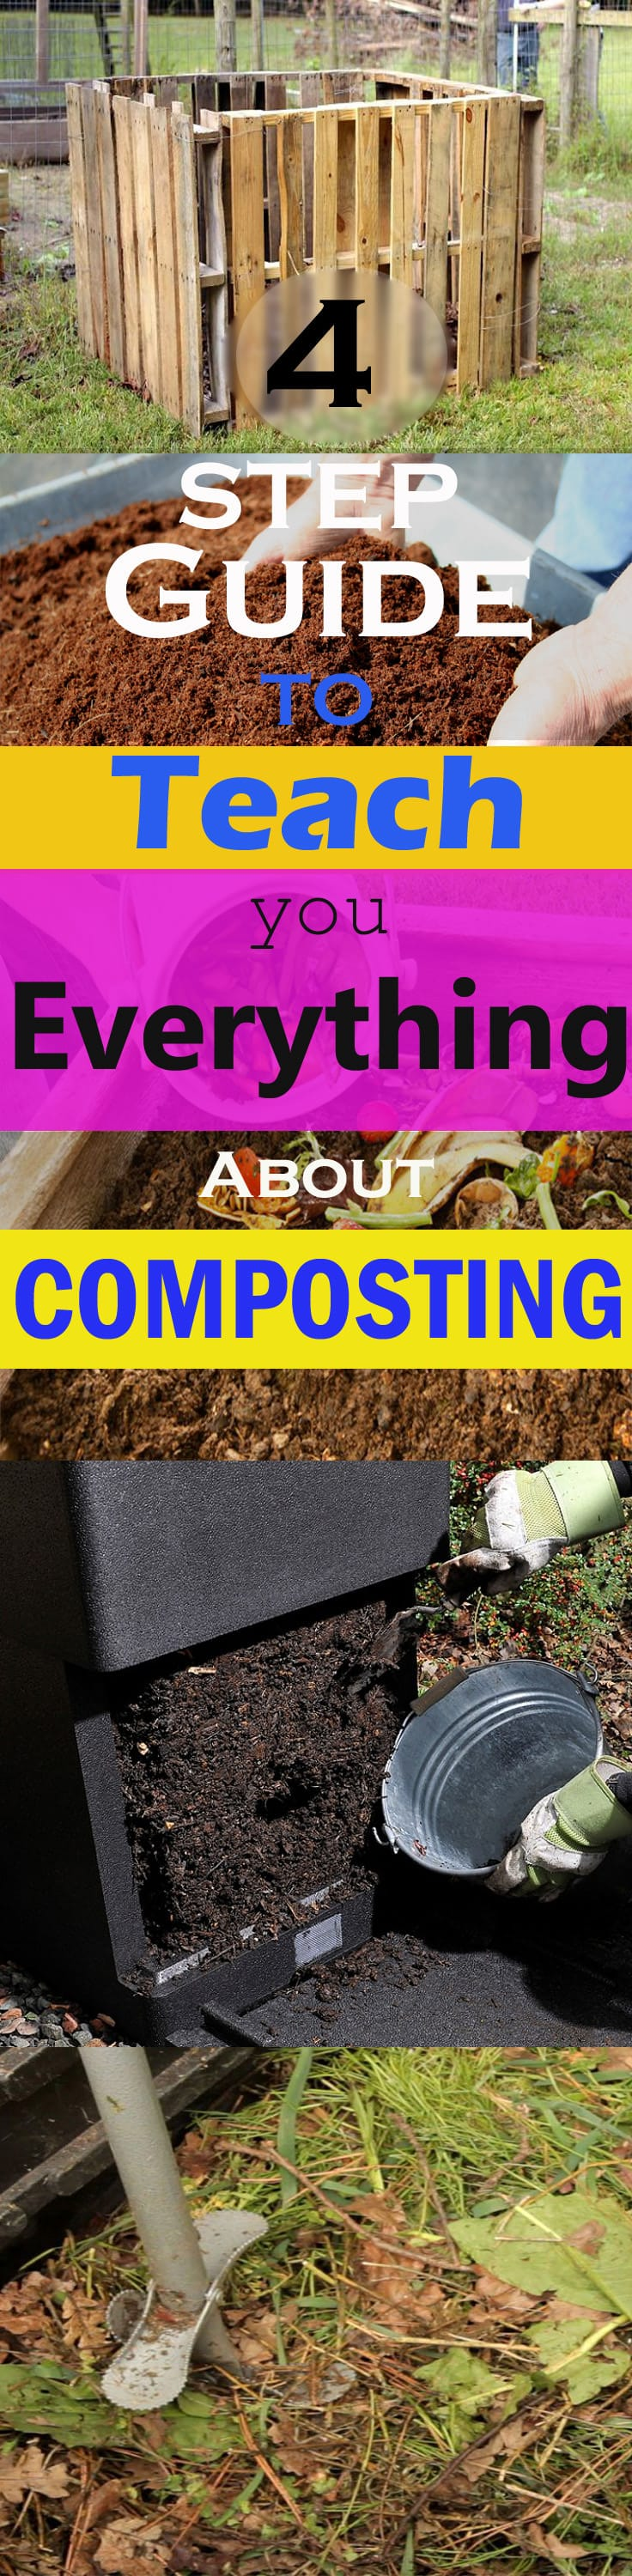 New to composting? Read on this 4 step COMPOSTING guide to learn everything you need to know to make your own compost!